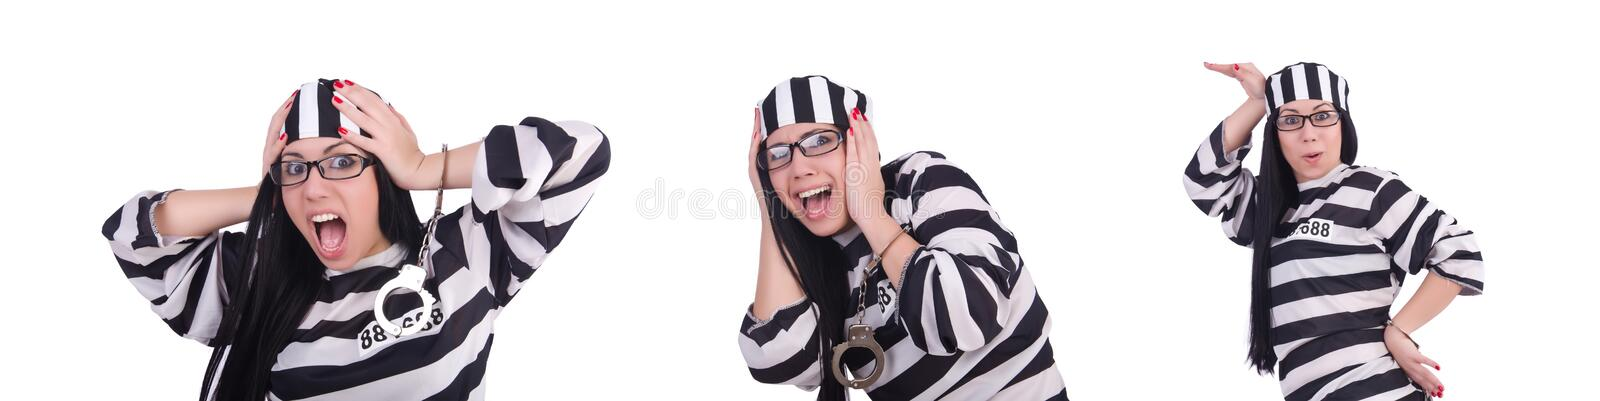 Prisoner in striped uniform on white royalty free stock photo